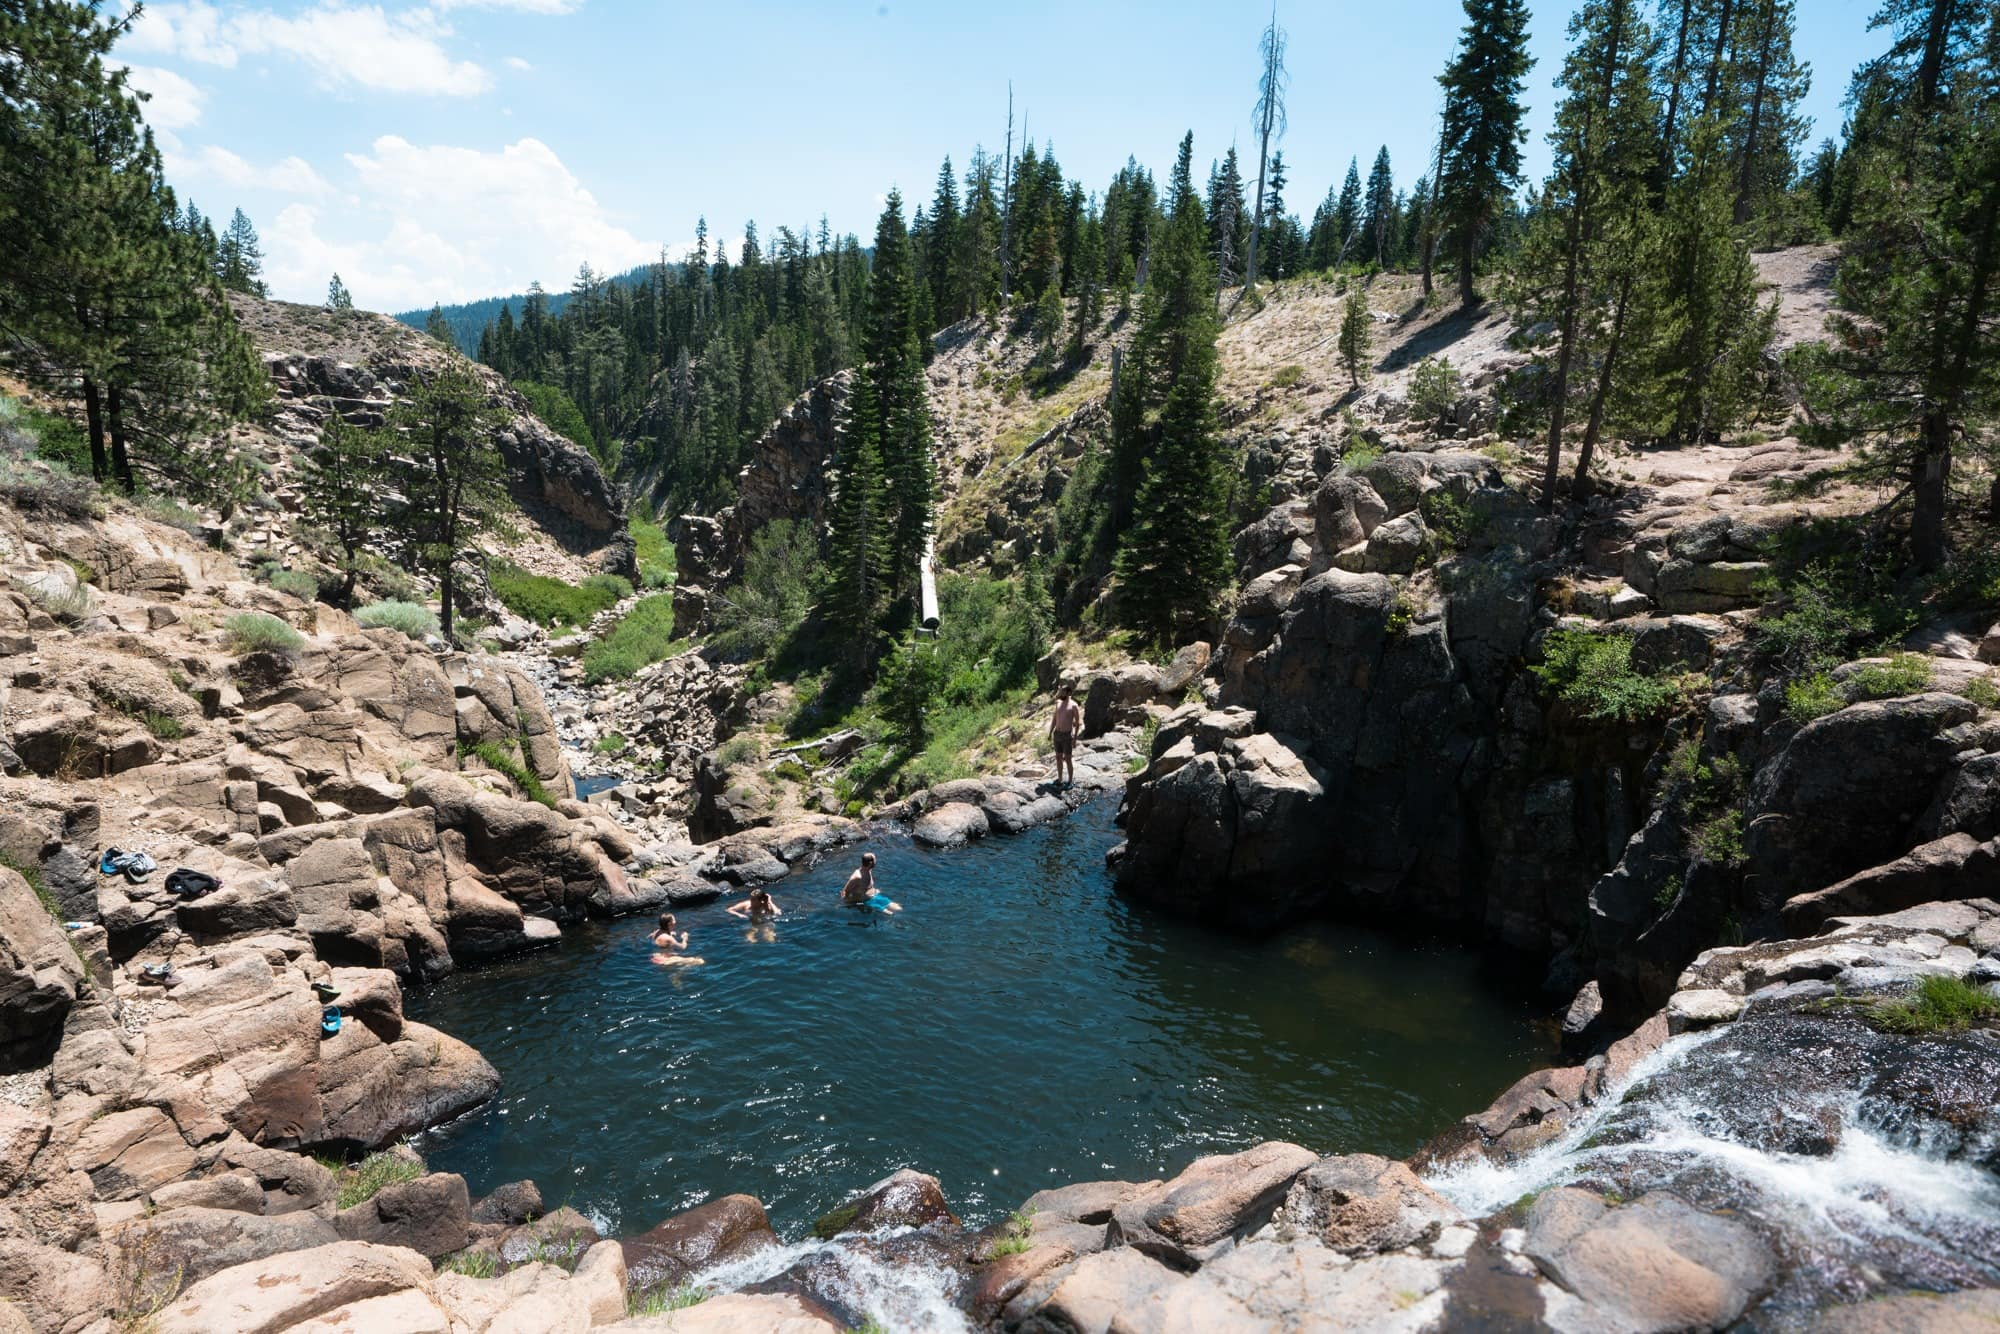 Webber Falls // Planning an adventure-packed vacation to Lake Tahoe? Here are 12 of the best things to do around Lake Tahoe for the outdoor enthusiast.